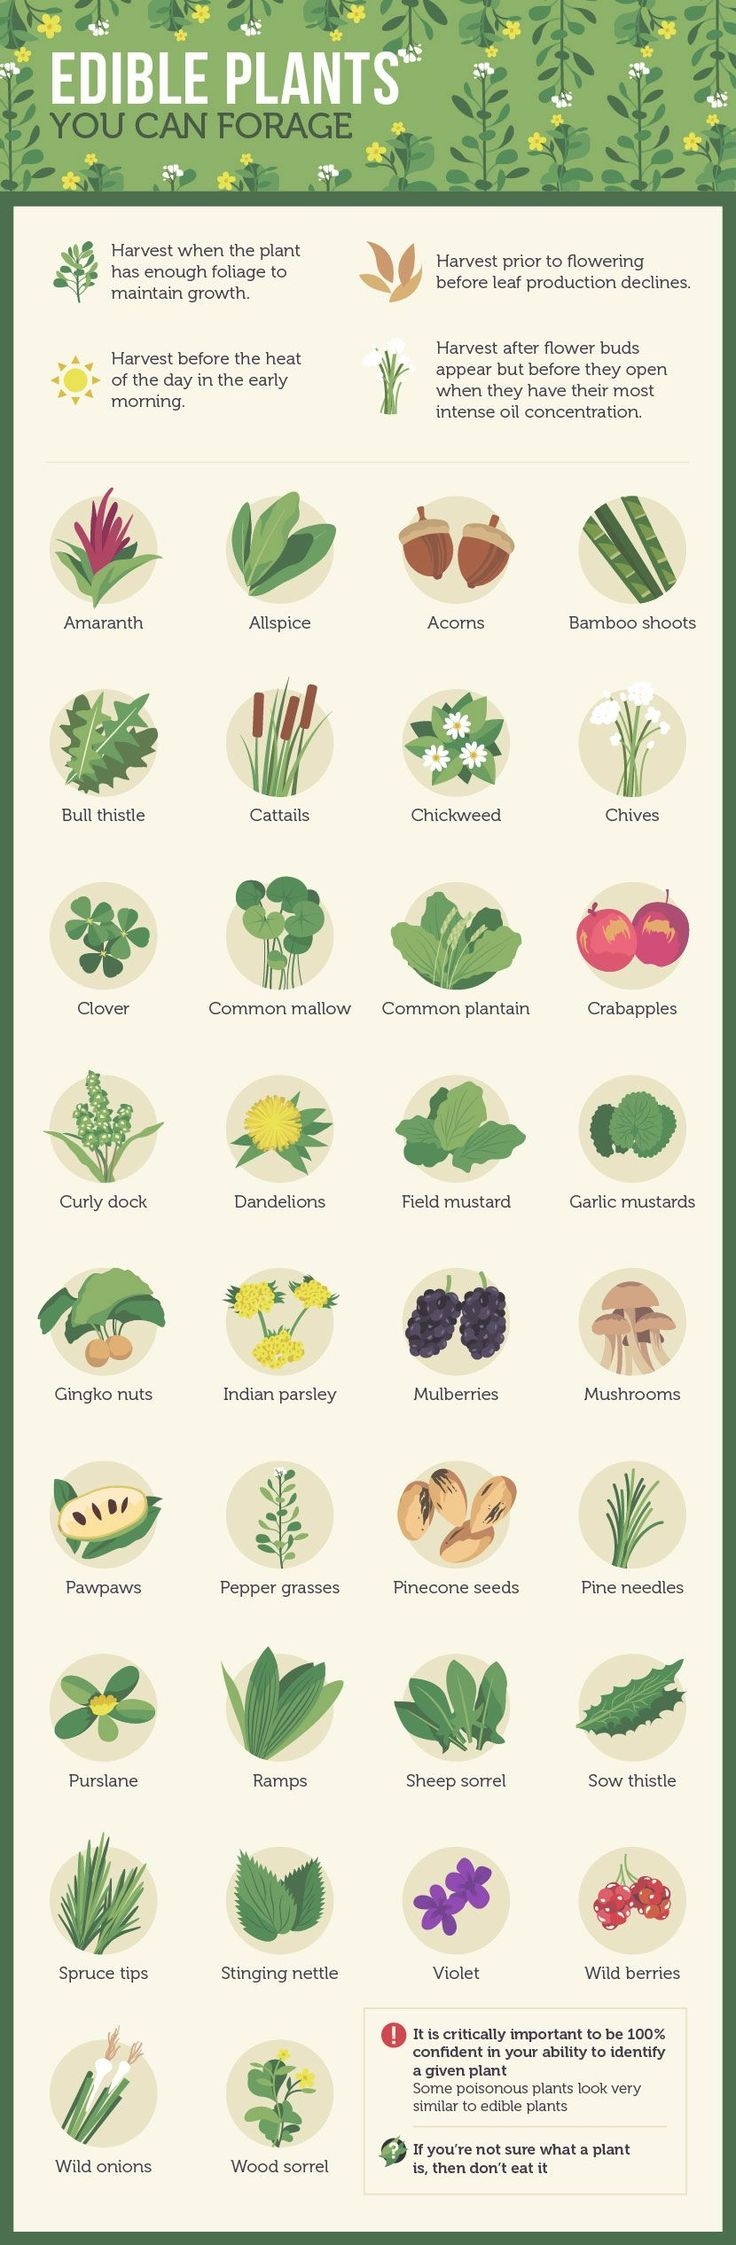 Plant identification is a useful skill to acquire for fun. And you never know when this knowledge will save your life.